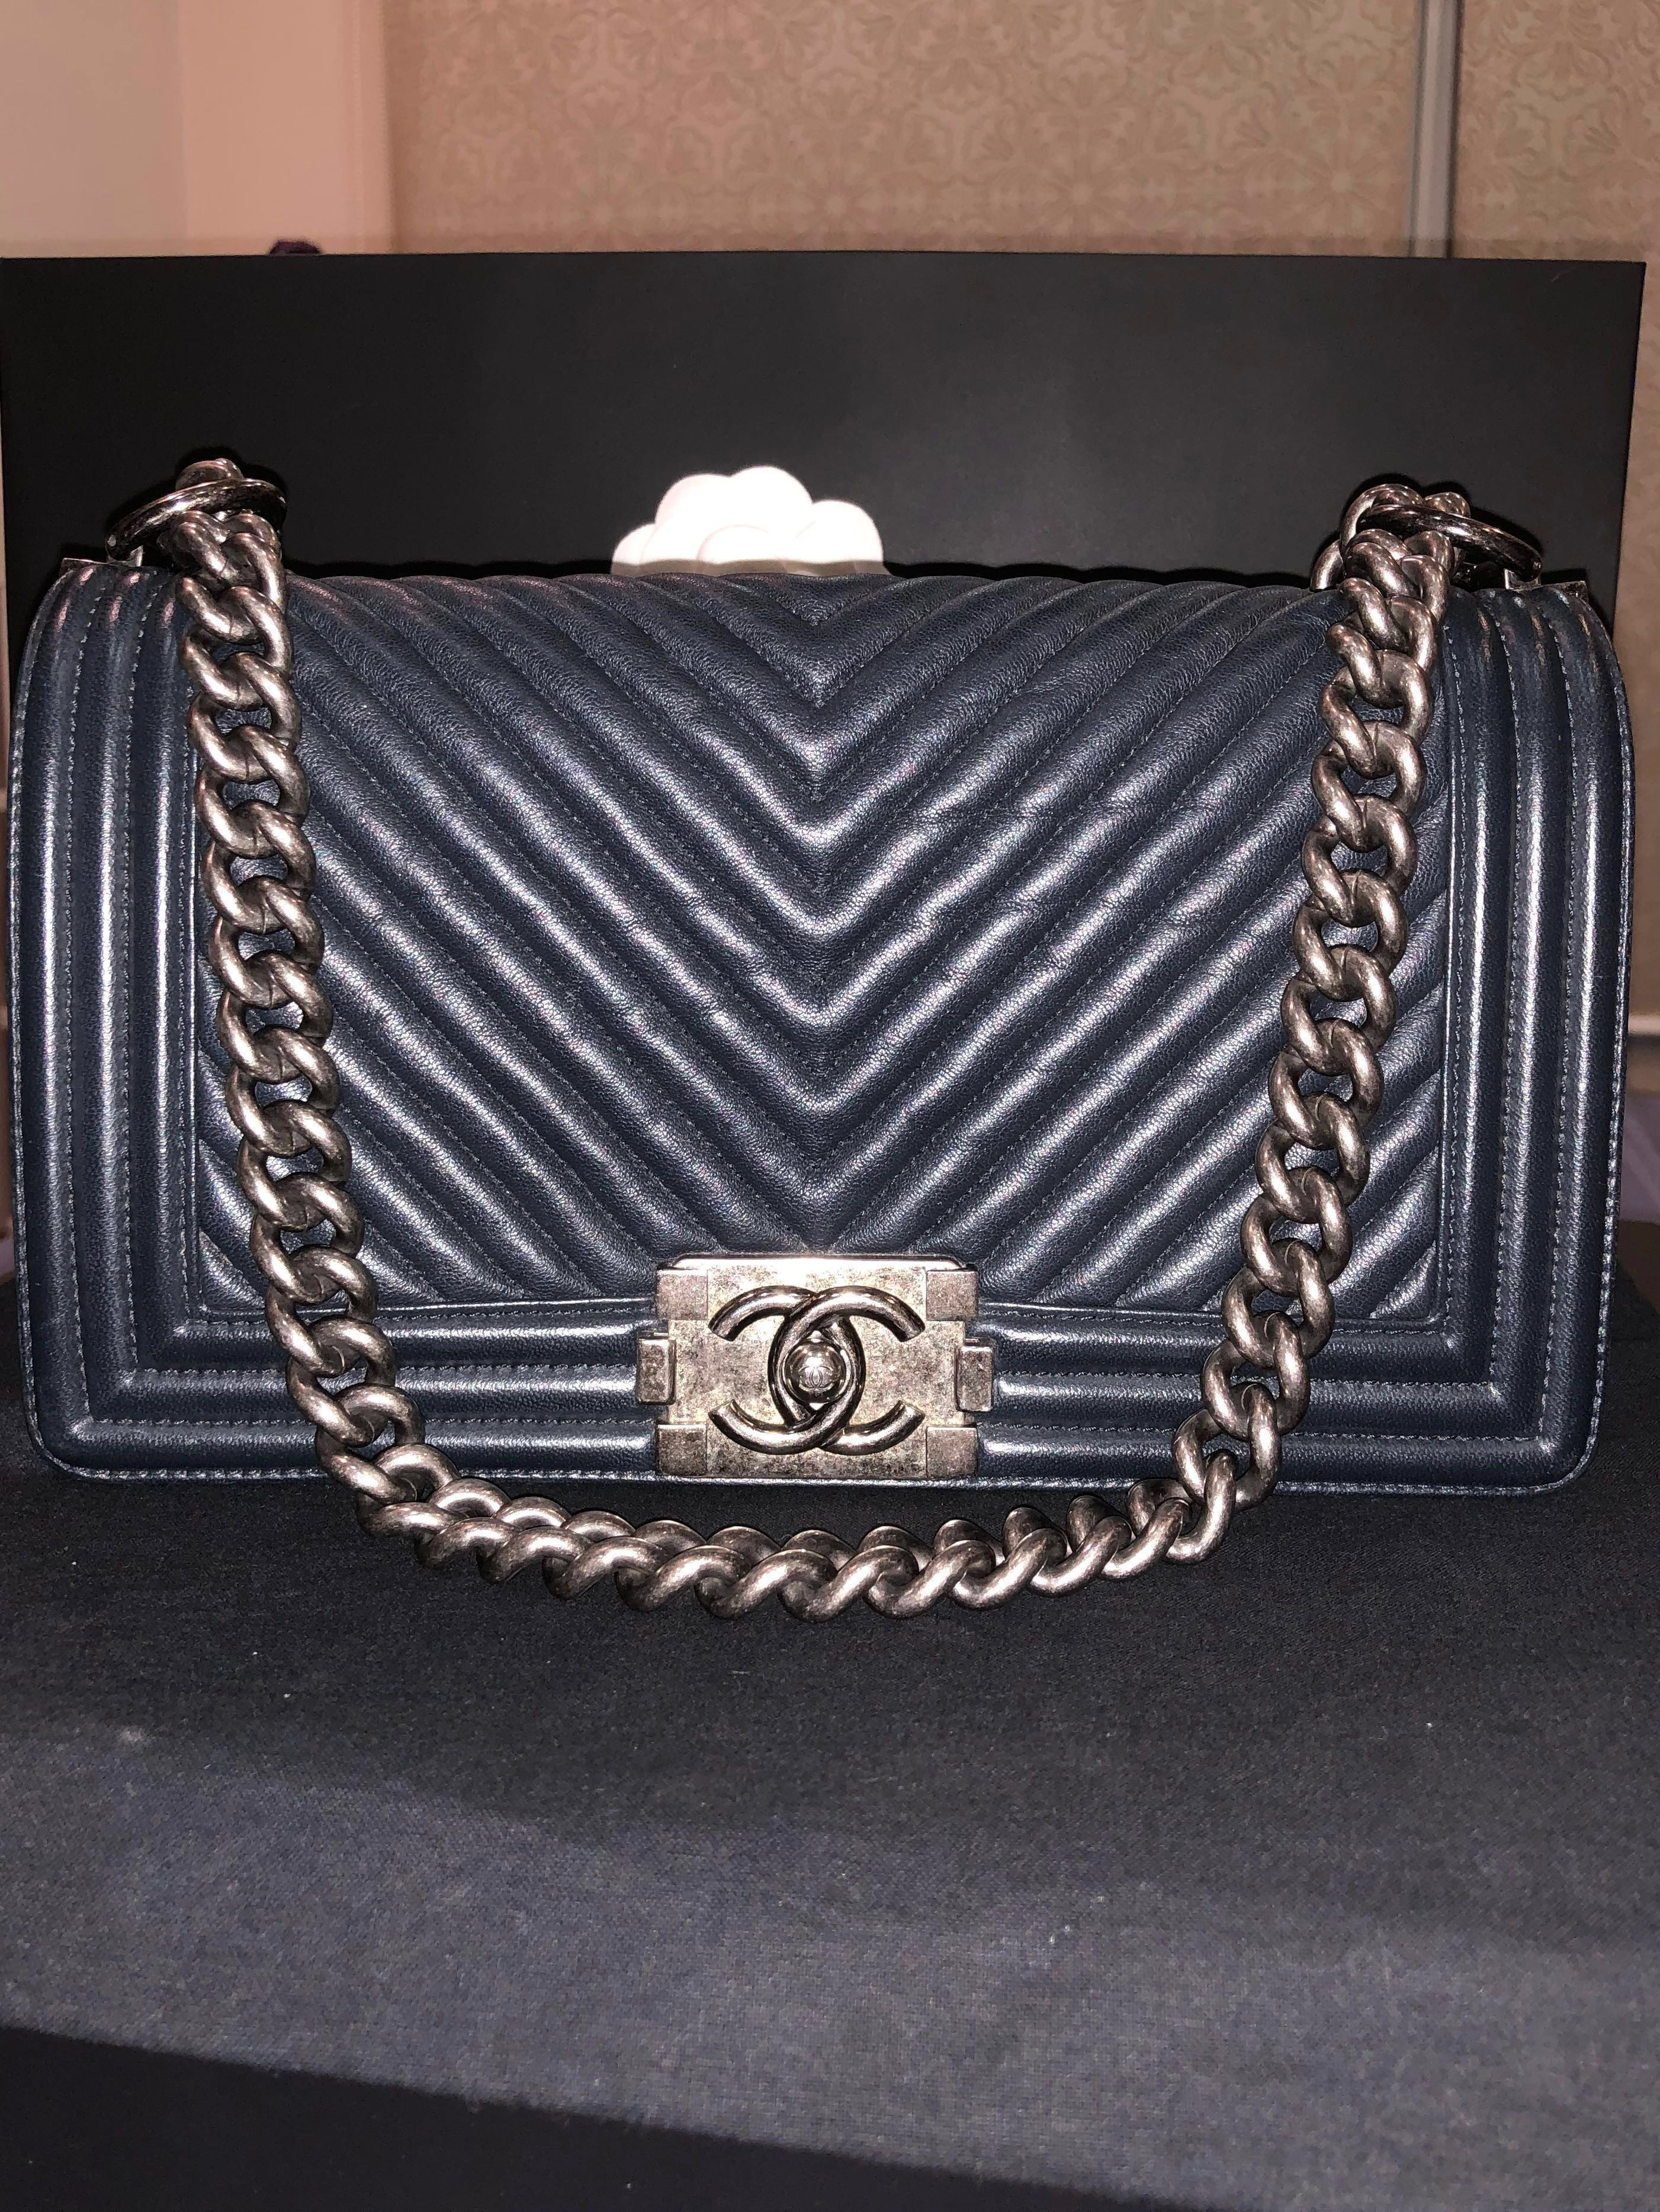 f9331dca0587a8 Chanel Boy, Luxury, Bags & Wallets, Handbags on Carousell